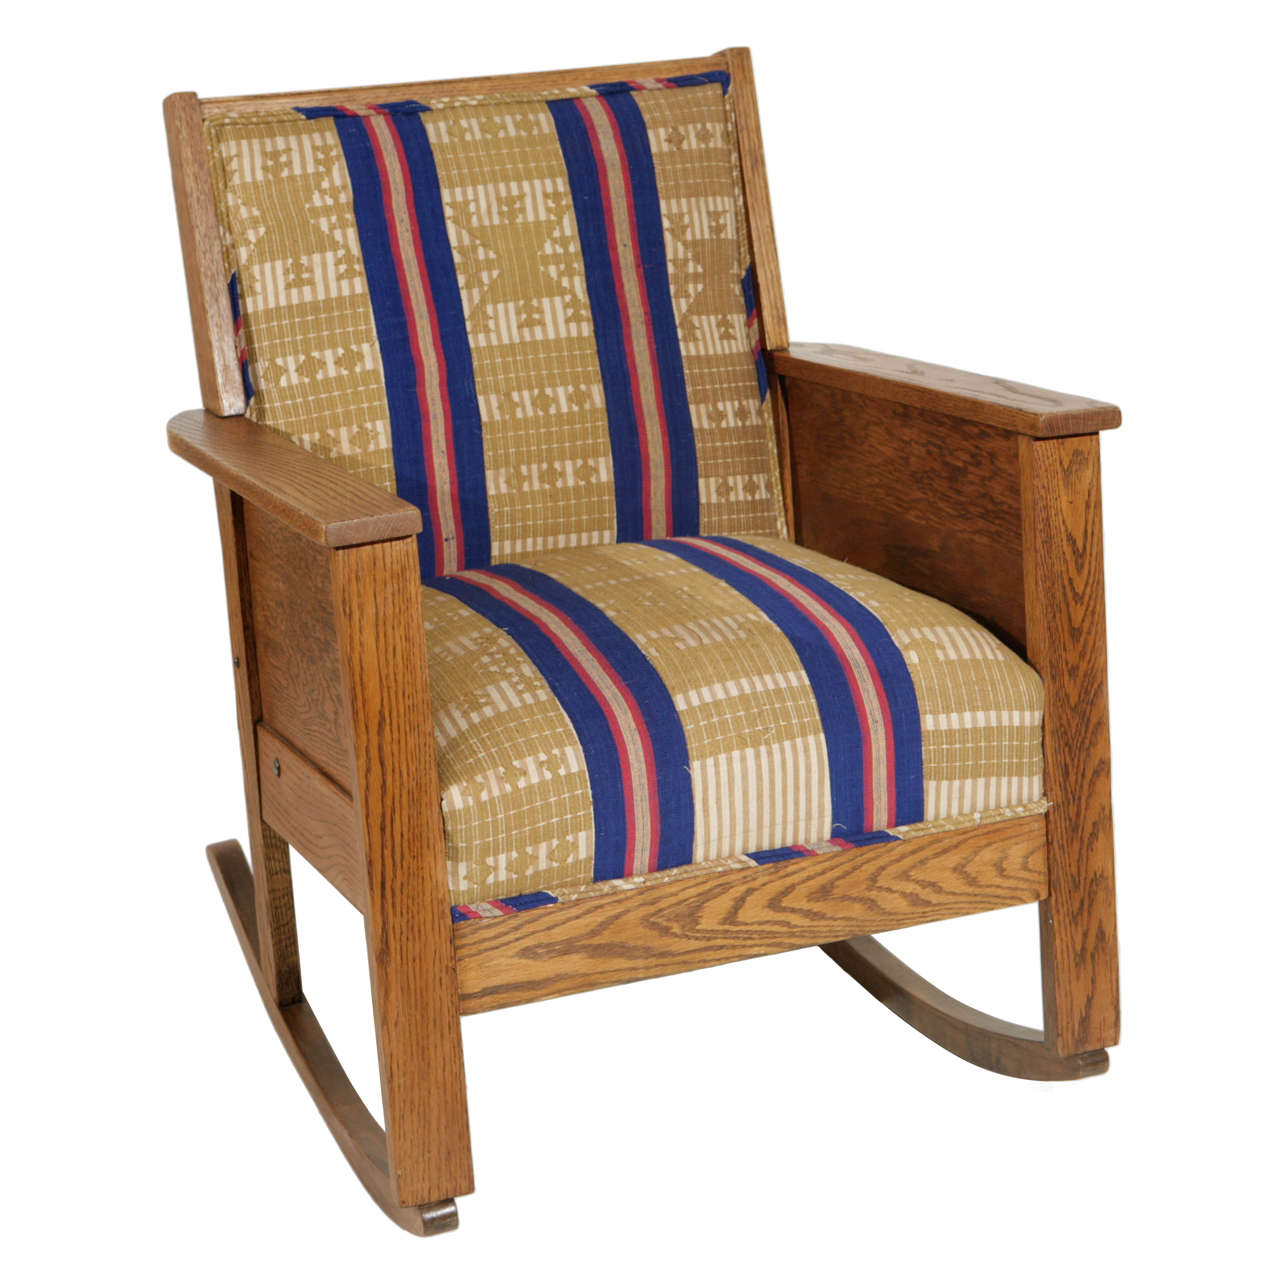 Late 19th Century American Craftsman Mission Style Oak Rocking Chair For  Sale - Late 19th Century American Craftsman Mission Style Oak Rocking